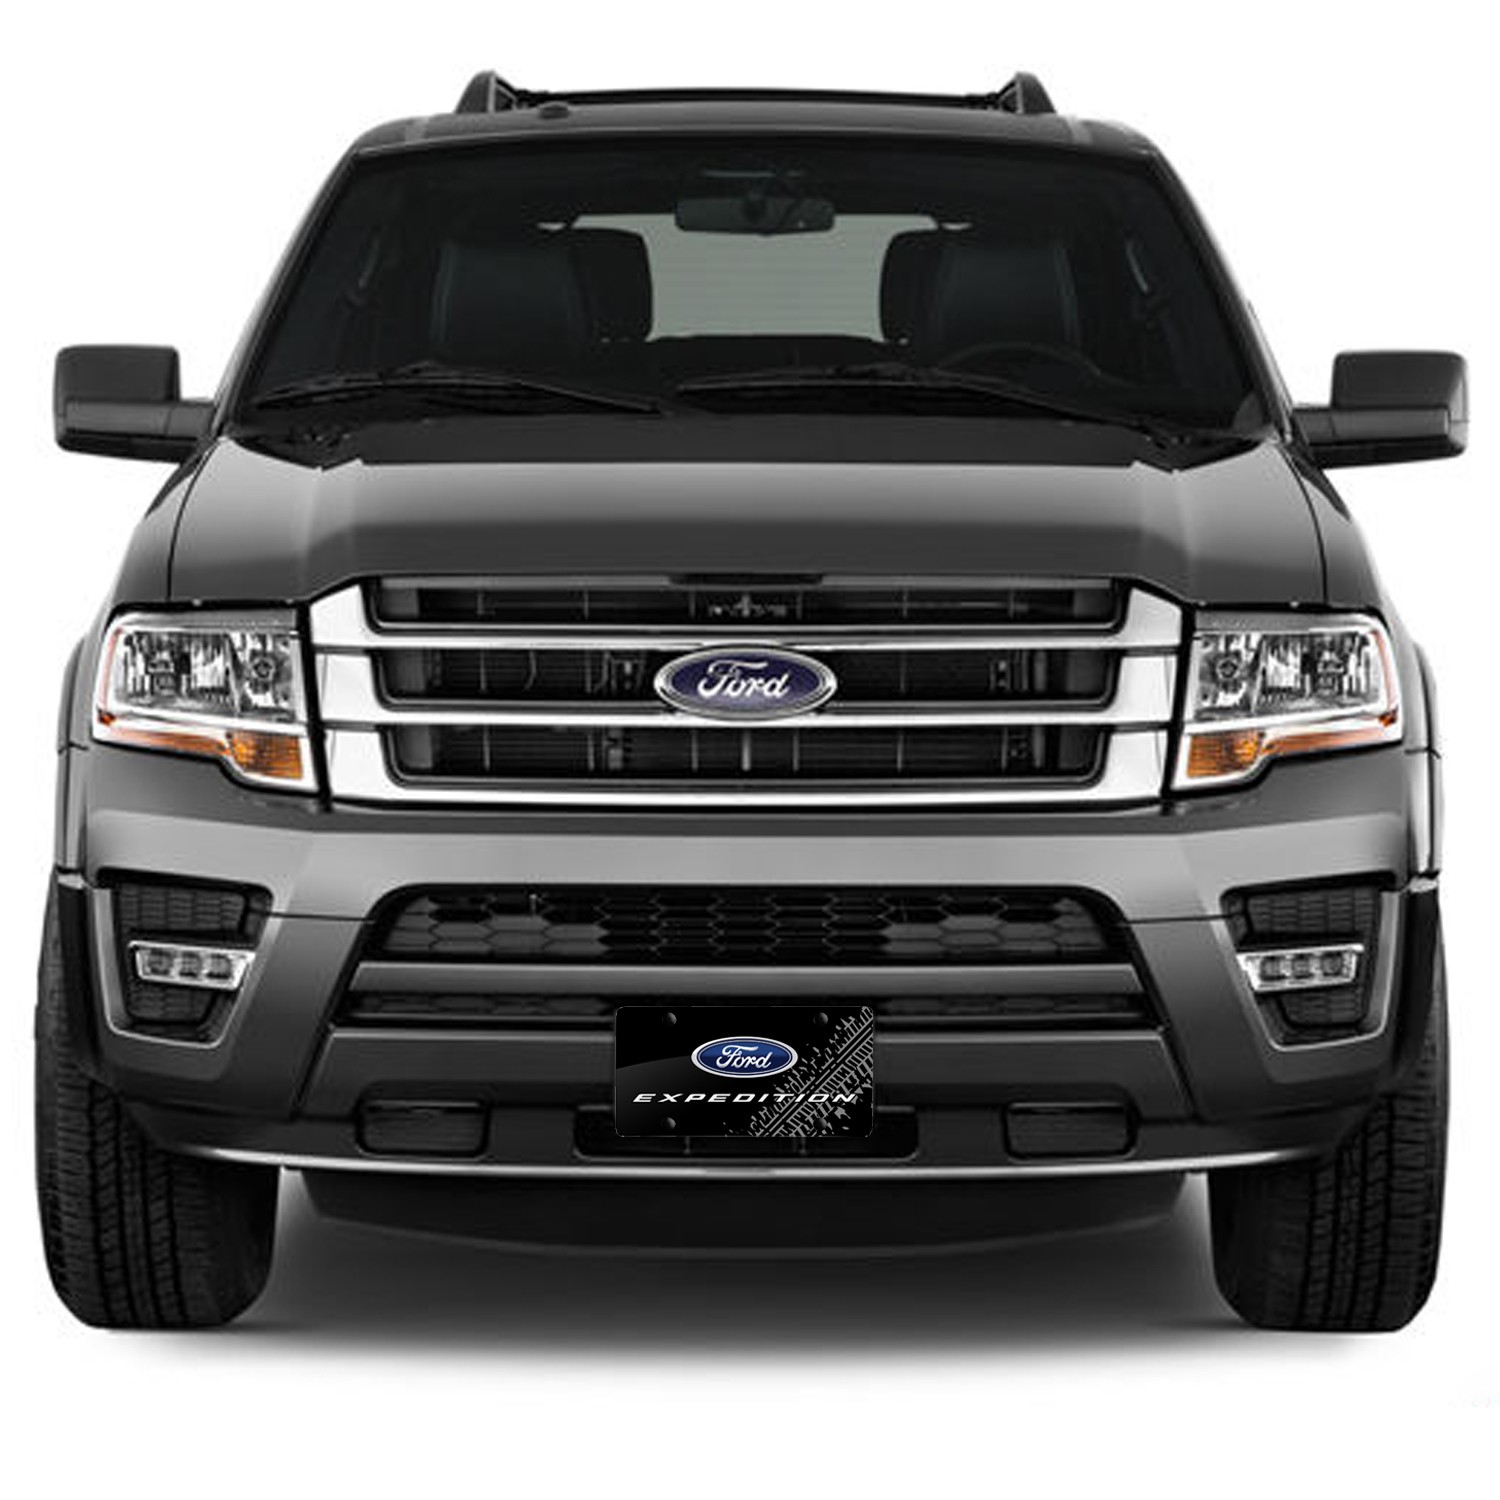 Ford Expedition Double Logo Tire Mark Graphic Black ...